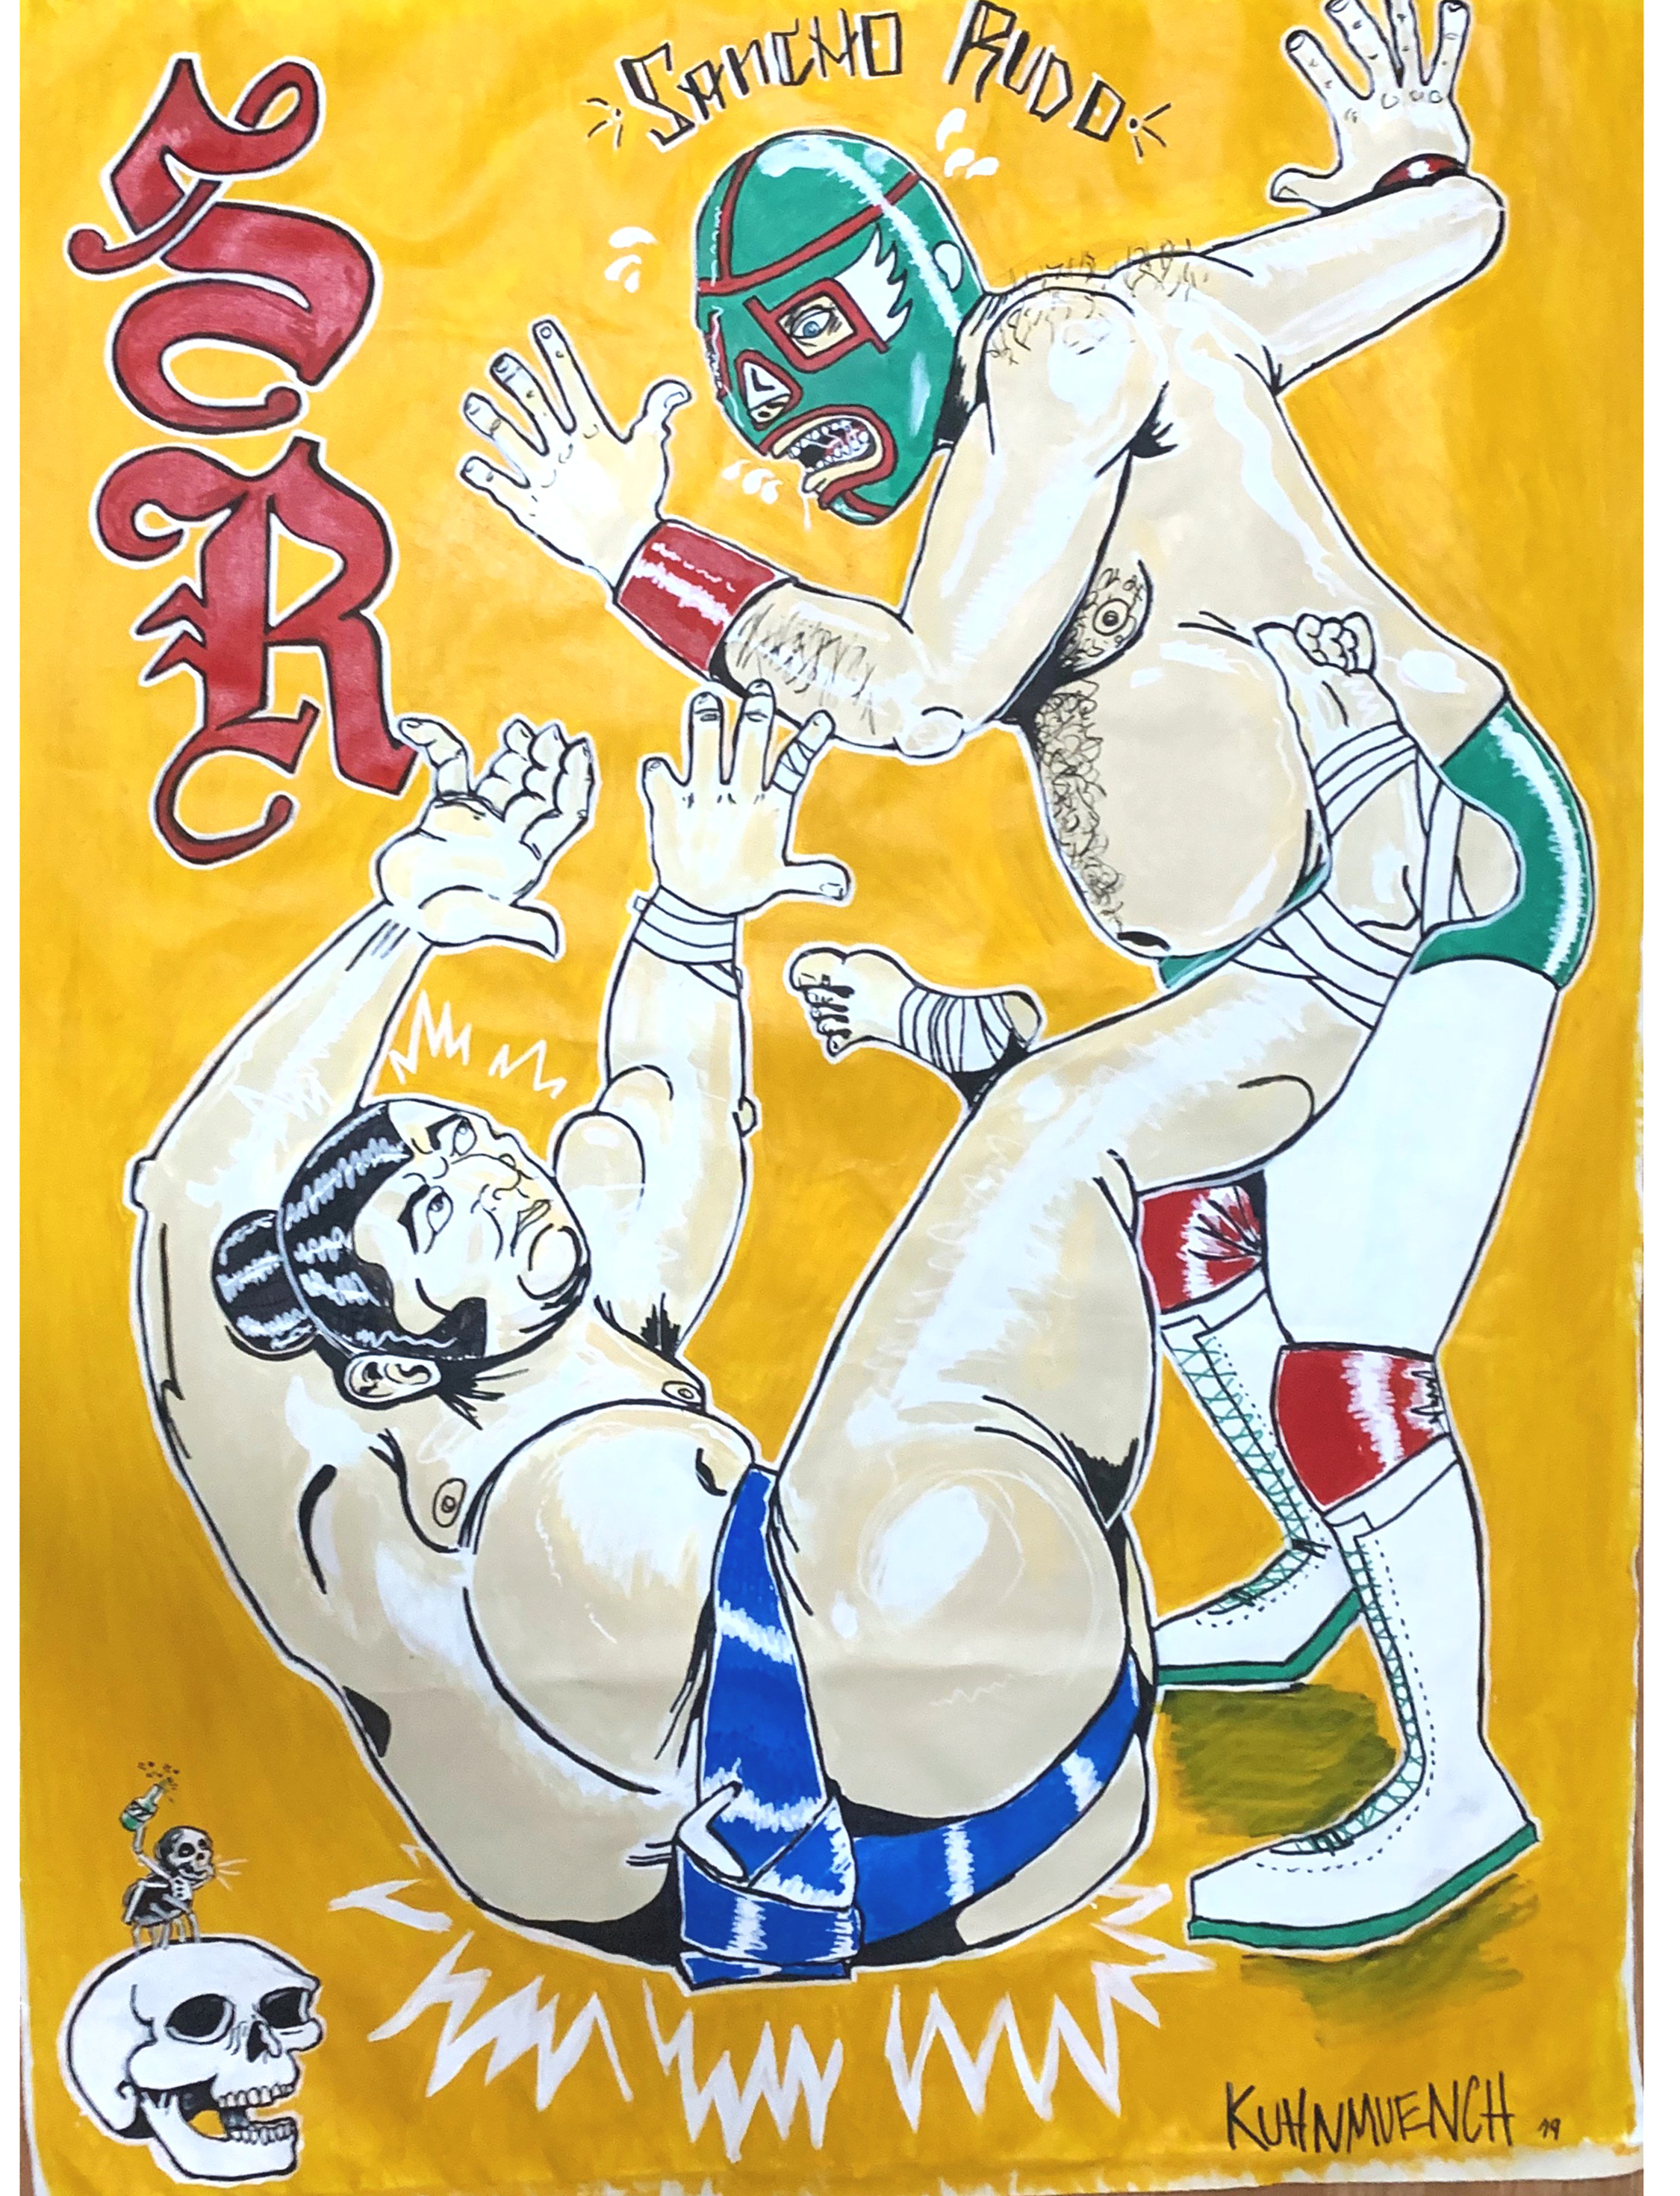 Sancho Rudo vs Sumo